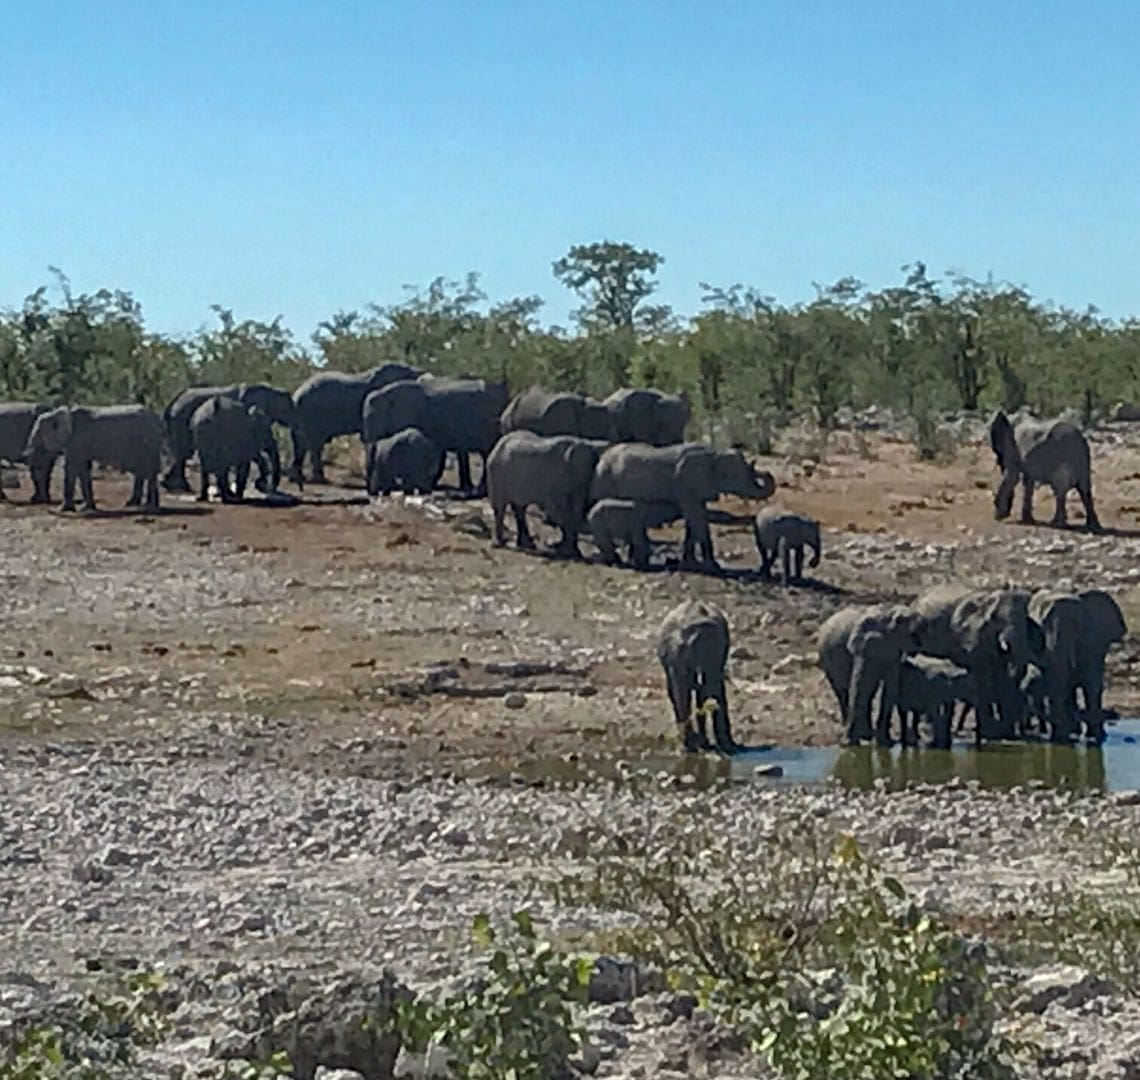 2 Week Namibia Itinerary - a heard of around 30-40 elephants are by a watering hole in Okaukuejo. There are babies and adults. Some are stood up a bit on a slope while others are in the water.